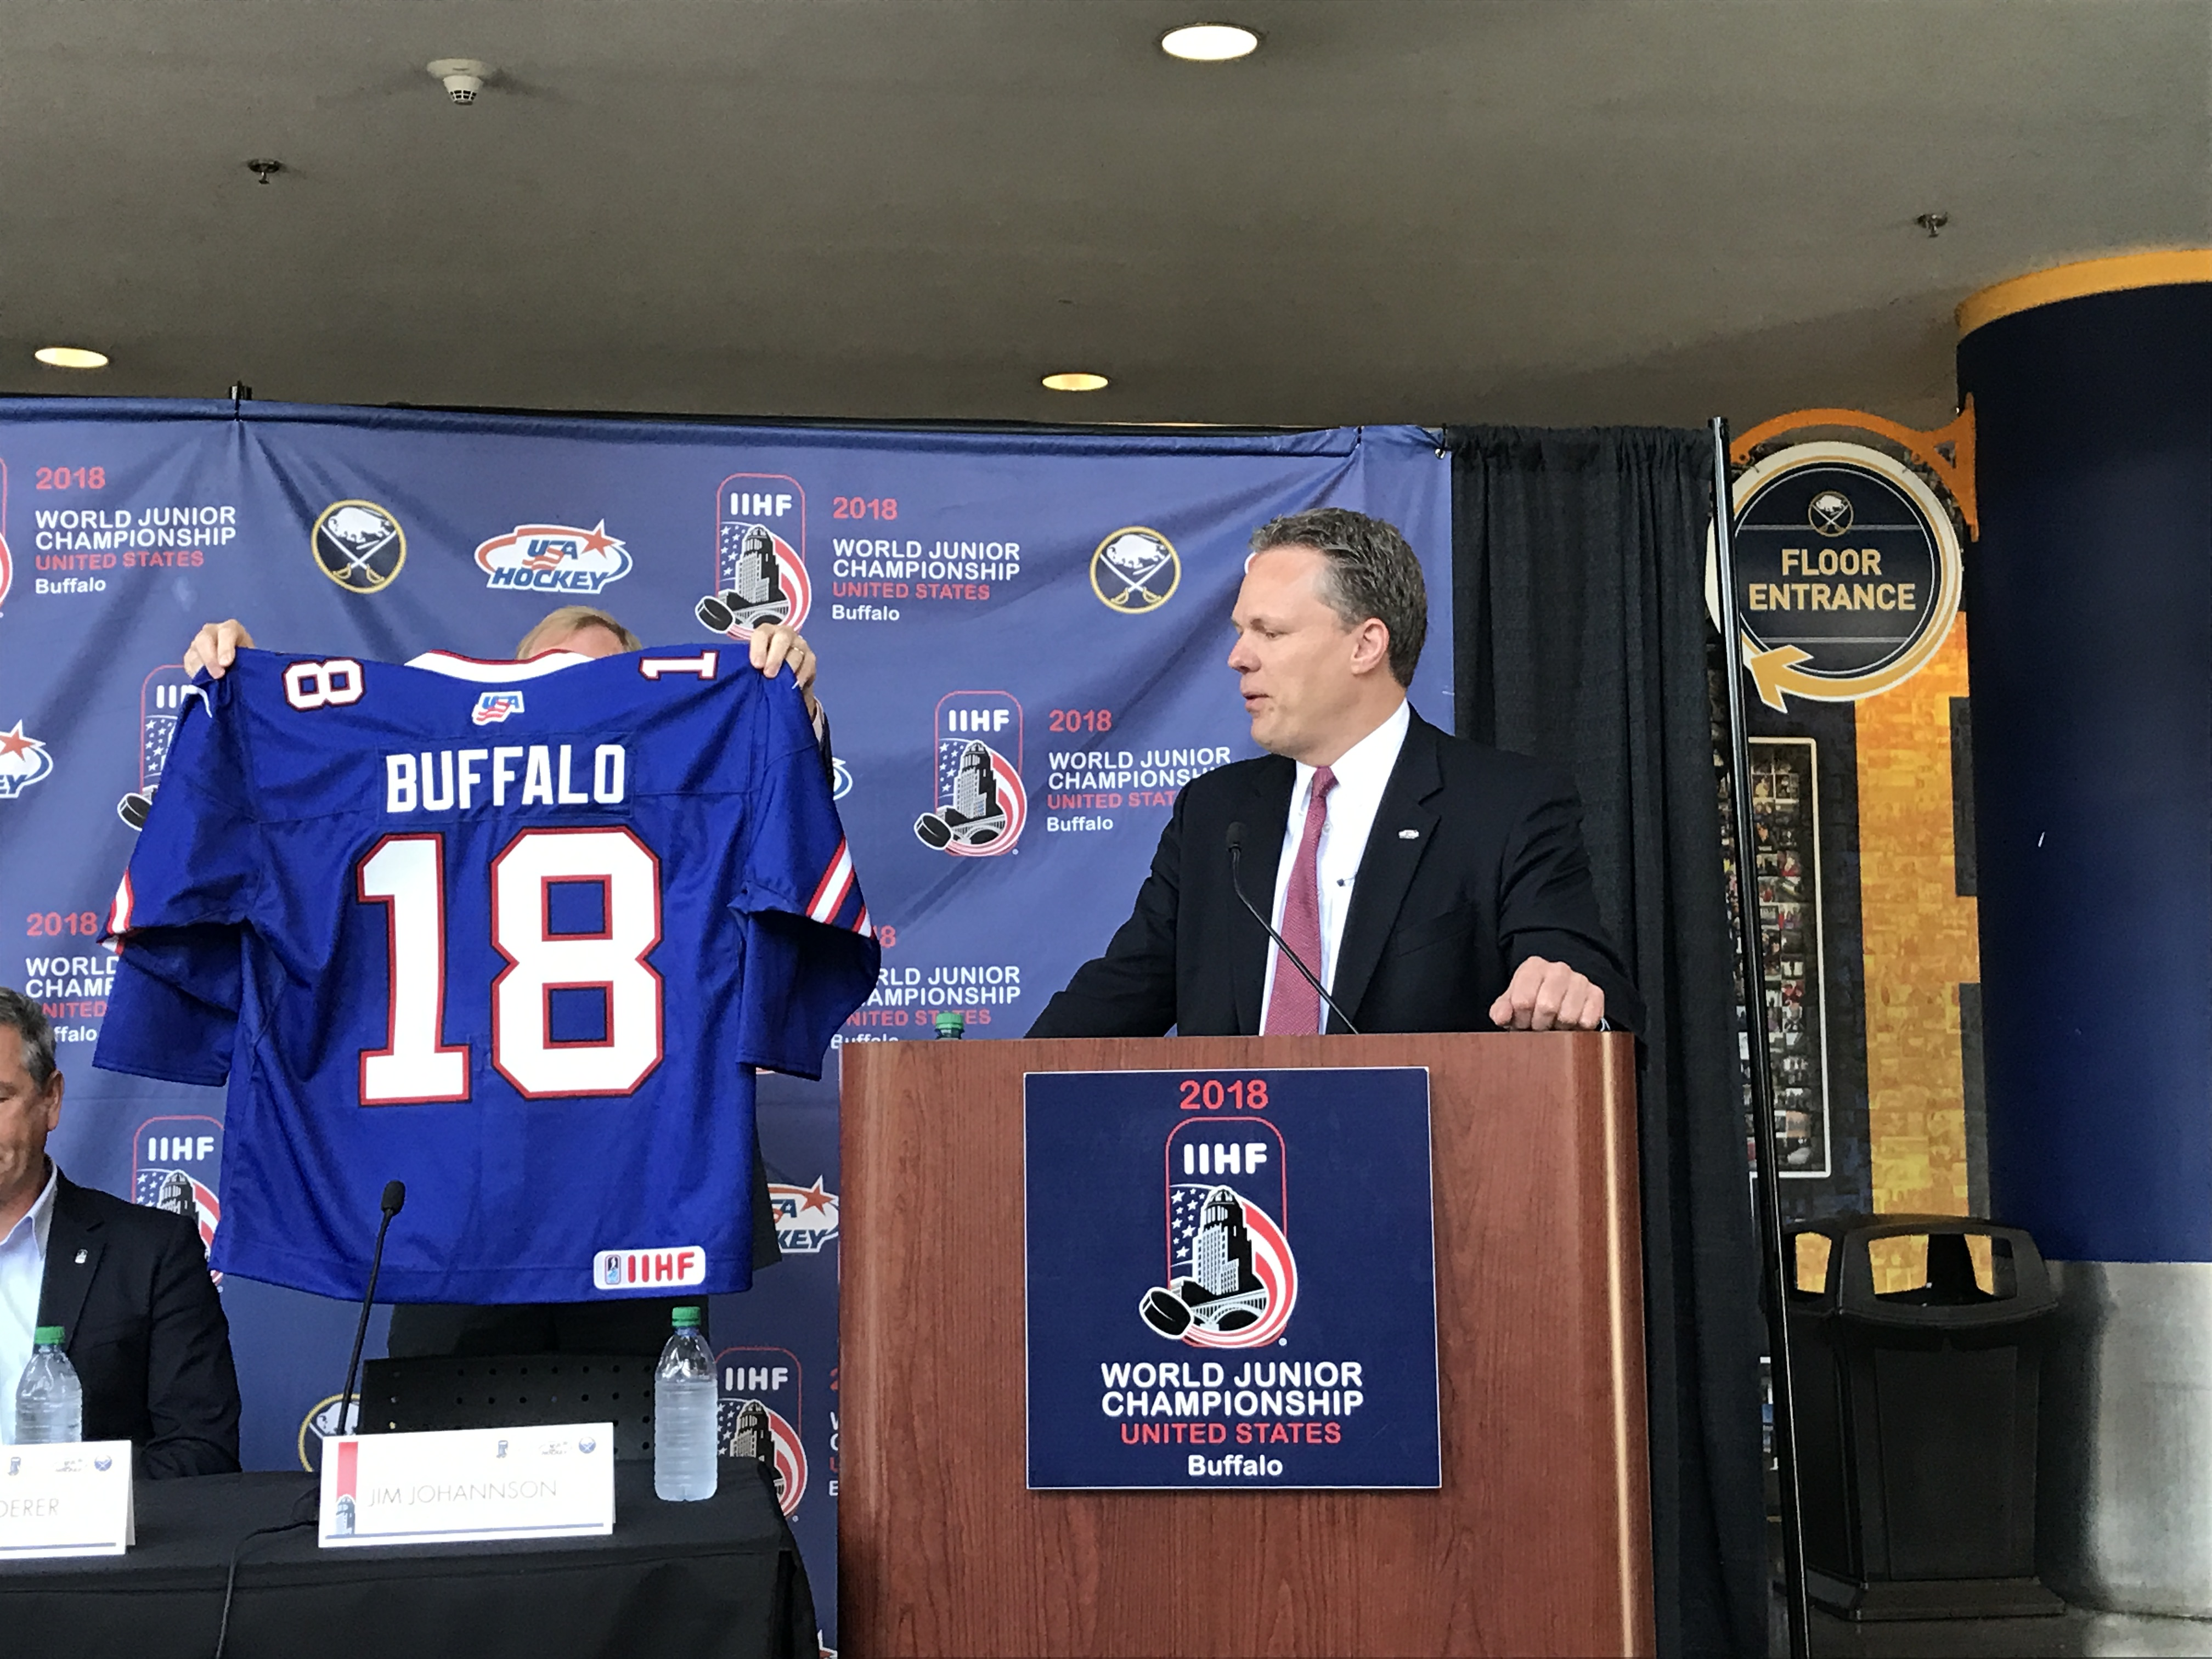 Usa Hockey Unveils Bills Themed Jersey For World Junior Outdoor Game